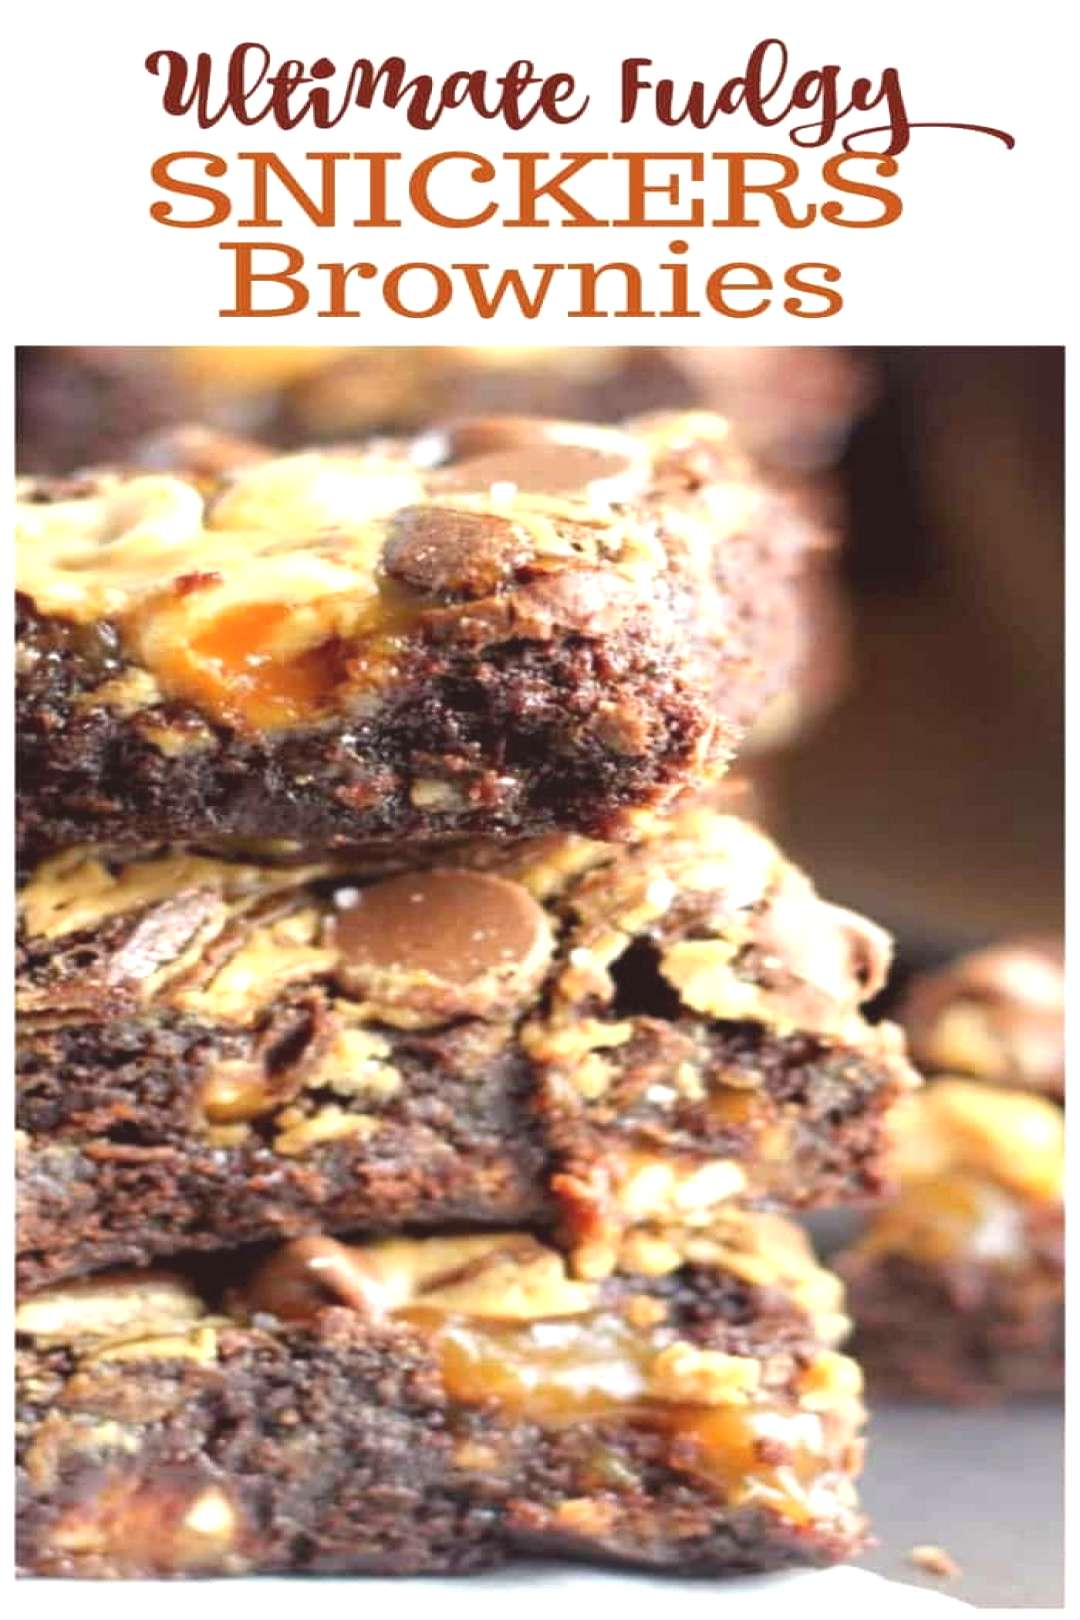 Ultimate Fudgy Snickers Brownies - Swirls of creamy peanut butter and caramel, with a generous sp